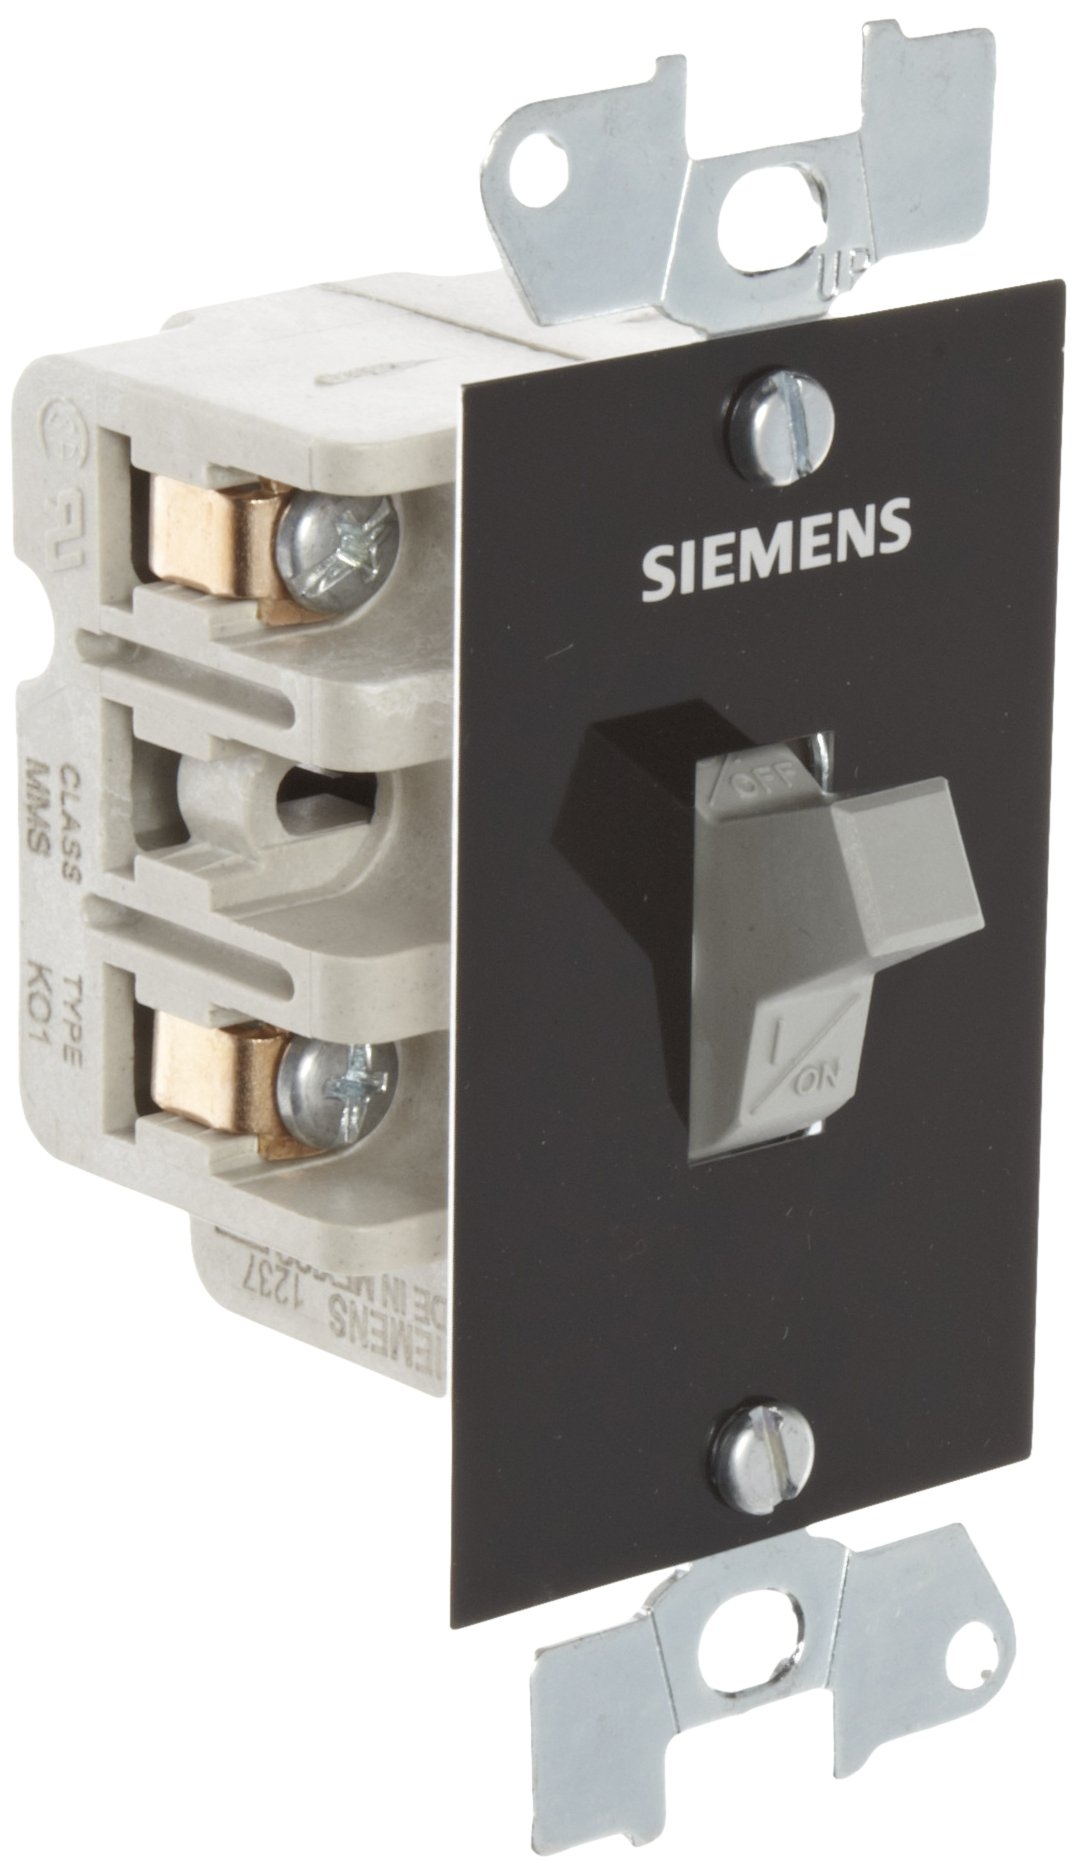 Siemens MMSK01 Fractional HP Switch, Single and 3 Phase, Open Type, Toggle Operator Type, Standard Switch Feature